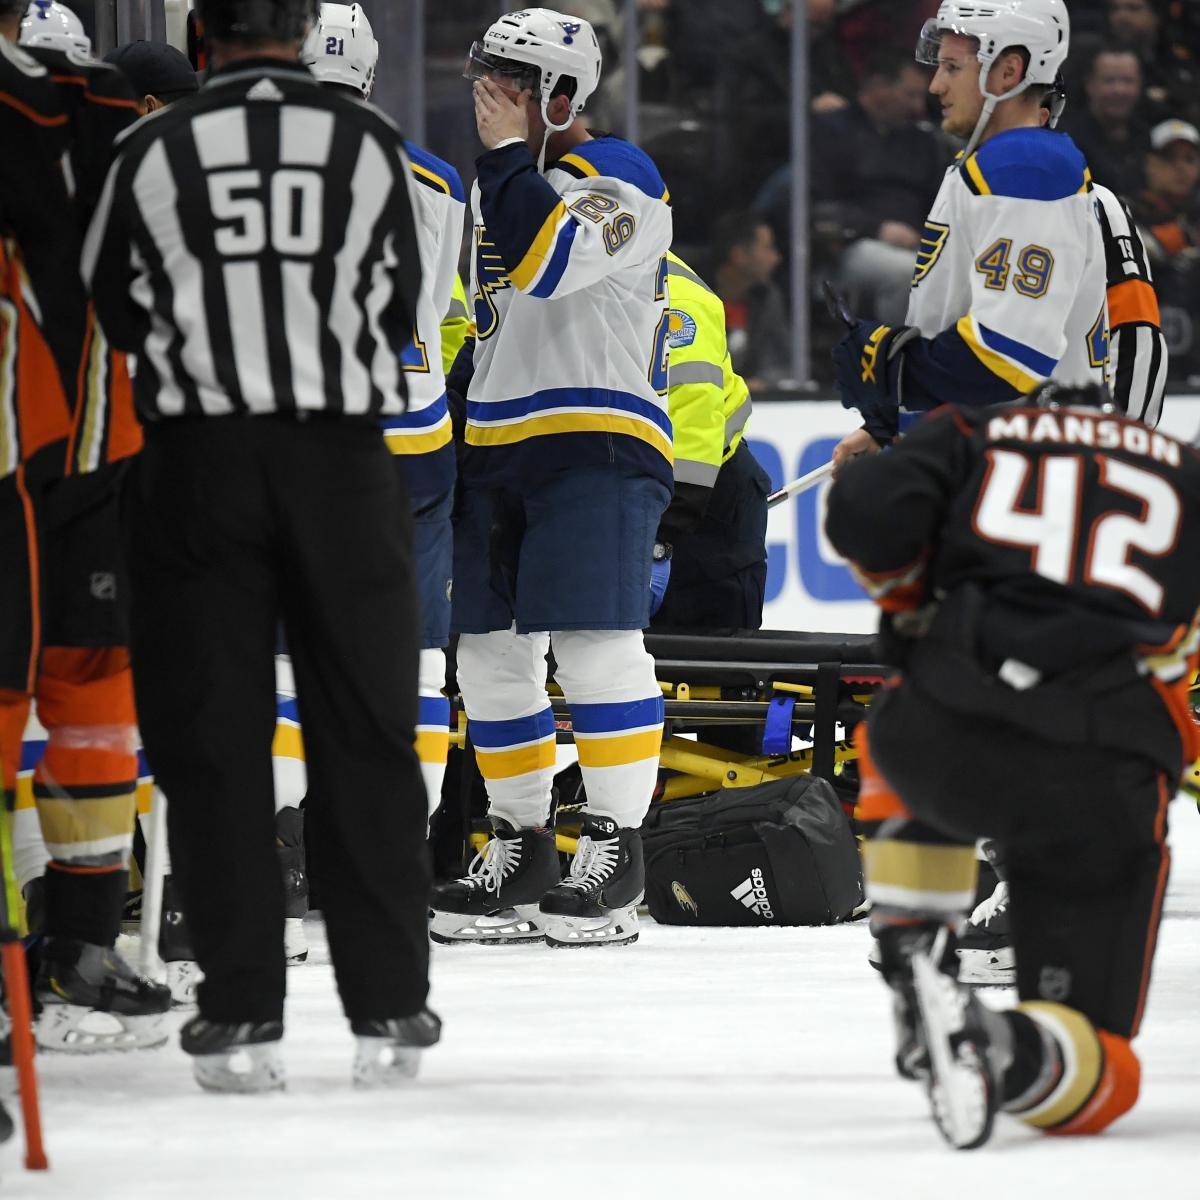 Blues vs. Ducks Rescheduled for March 11 After Jay Bouwmeester Cardiac Emergency